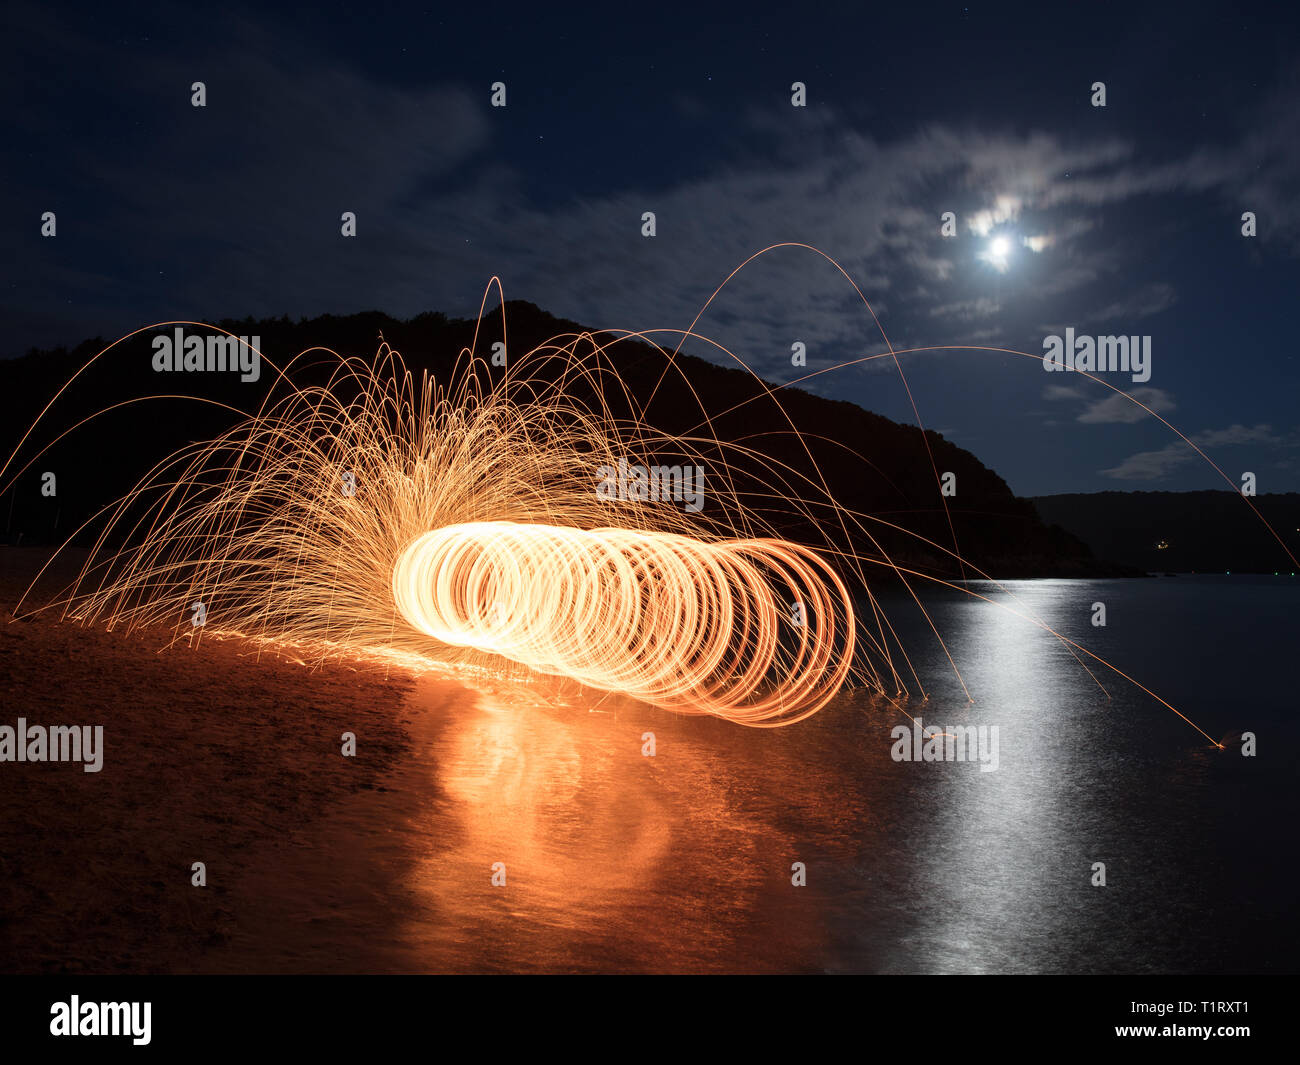 A steel wool shot on East Portlemouth beach in Devon. Steel wool photography involves using a whisk,steel wool and a dog lead. Stock Photo